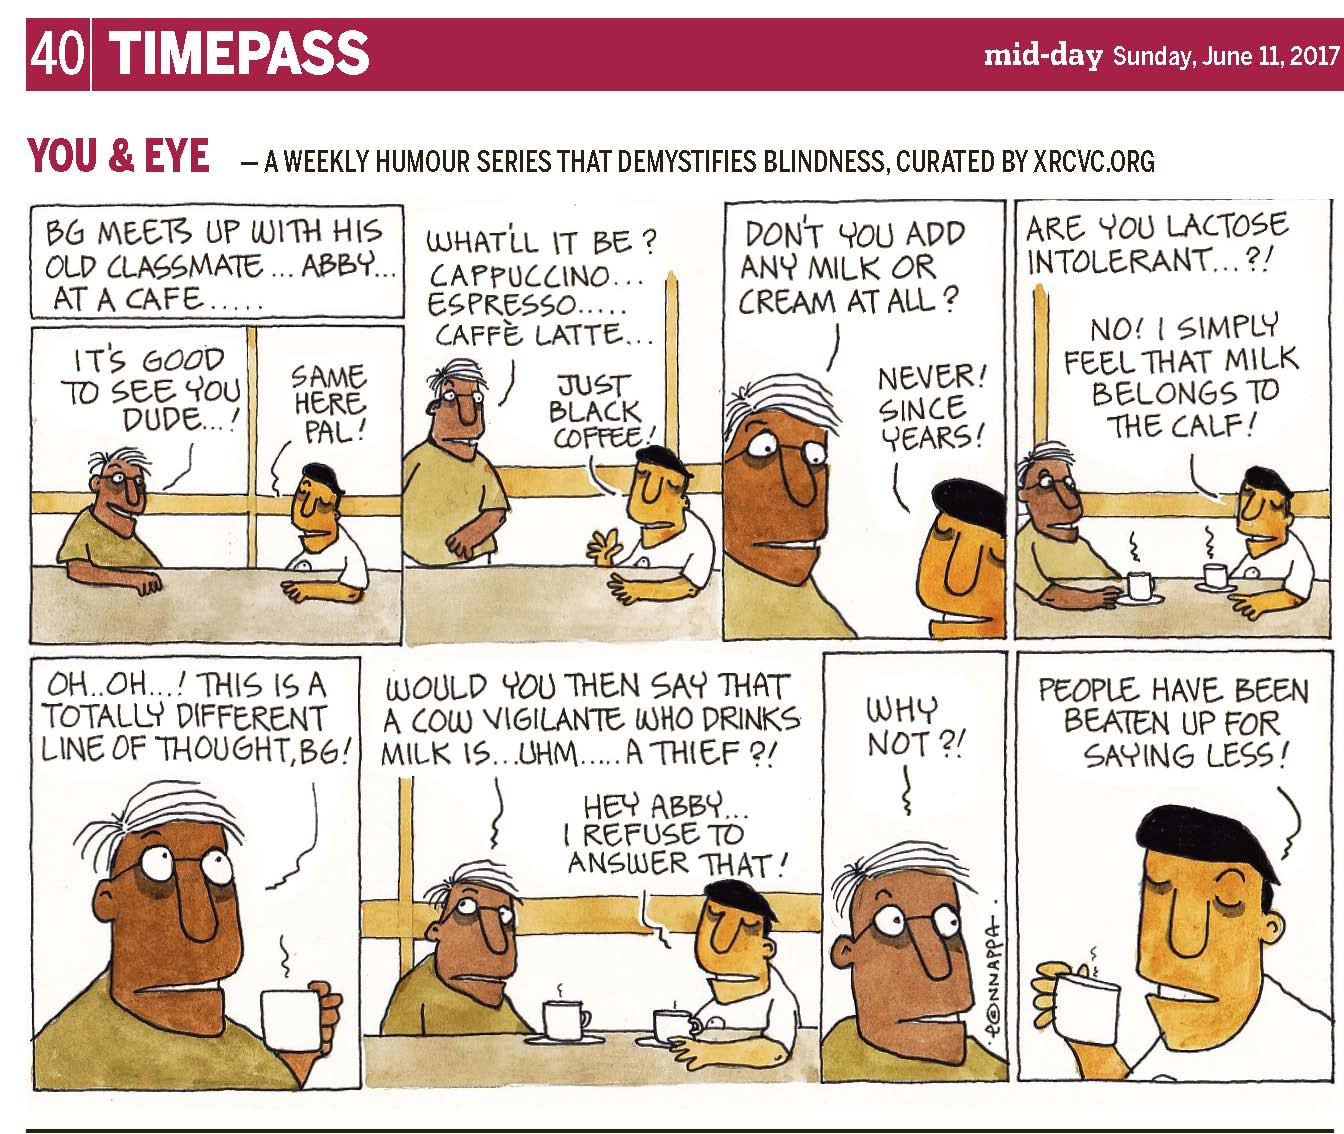 (top-left) 40 | TIMEPASS (top-right) mid-day Sunday, June 11, 2017 YOU & EYE – A WEEKLY HUMOUR SERIES THAT DEMYSTIFIES BLINDNESS, CURATED BY XRCVC.ORG Image description: A cartoon strip with 8 frames… Frame 1: (A bespectacled man with scanty hair, has his right arm resting on a table beside him, while smiling as he sits across BG who rests his left arm on the same table.) Text: BG meets up with his old classmate… Abby… at a cafe Abby: It's good to see you dude…! BG: Same here pal! Frame 2: (Abby is now standing, with his right arm not seen in the frame, as though he began walking away from the table where BG is still resting his left arm, while the fingers of his right hand are spread and pointed upwards in front of him.) Abby: What'll it be? Cappuccino… Espresso… Caffè Latte… BG: Just black coffee! Frame 3: (A close-up of Abby and BG facing each other) Abby: Don't you add any milk or cream at all? BG: Never! Since years! Frame 4: (Abby rests his right arm on the table beside him, as he sits across BG who rests his left arm on the same table. Each of them have a cup in a saucer in front of them. A short vertical zigzag line above each cup represents steam coming upwards from them.) Abby: Are you lactose intolerant…?! BG: No! I simply feel that milk belongs to the calf! Frame 5: (A close-up of Abby holding a cup in front of his mouth with his left hand. His eyes are wide open while he seems to be thinking about something.) Abby: Oh… Oh…! This is a totally different line of thought, BG! Frame 6: (Abby looks towards the top-right and his eyebrows are raised up, as he sits across BG who rests his left arm on the table beside them. Each of them have a cup in a saucer in front of them. The vertical zigzag line above each cup is now shorter, denoting that there is lesser steam coming from the beverage now.) Abby: Would you then say that a cow vigilante who drinks milk is… uhm… a thief?! BG: